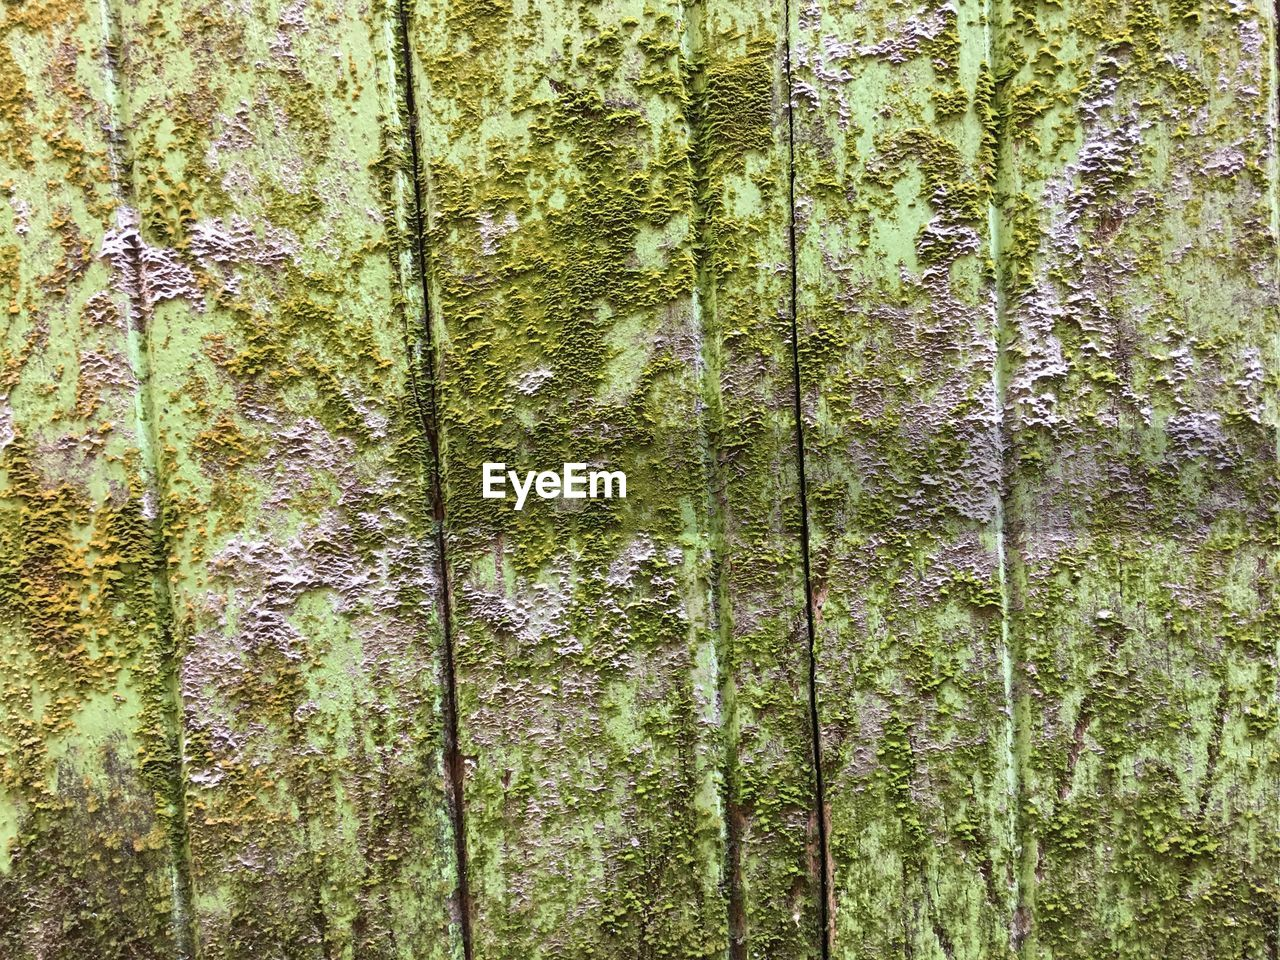 full frame, backgrounds, plant, tree, textured, tree trunk, trunk, no people, wood - material, pattern, close-up, growth, green color, moss, day, weathered, nature, rough, forest, run-down, outdoors, lichen, deterioration, textured effect